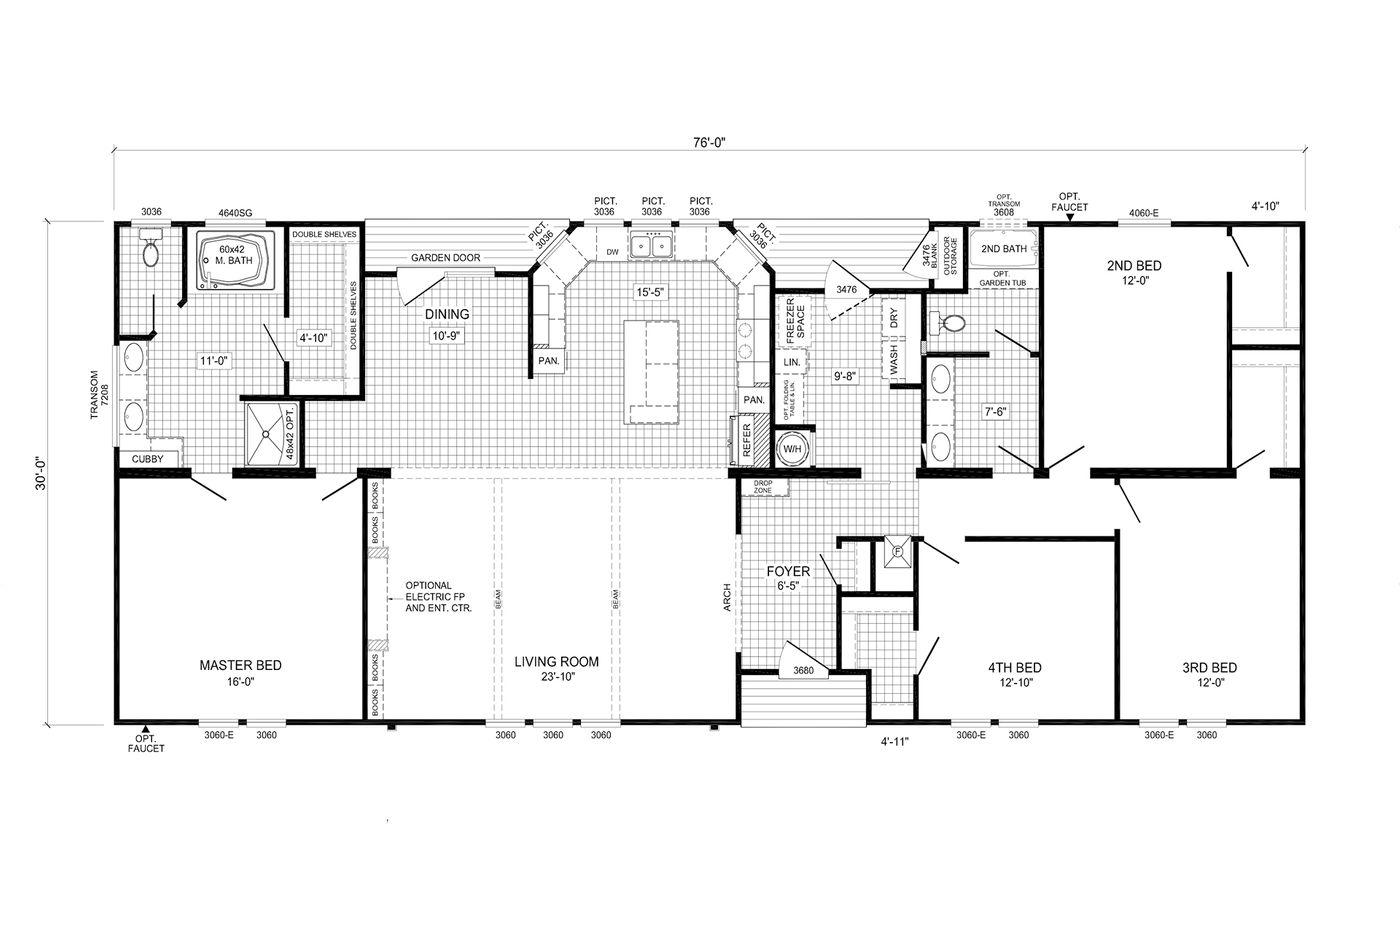 Floor plan of the Whitmore Manufactured Home from Worldwide Mobile Homes in Lumberton, Texas